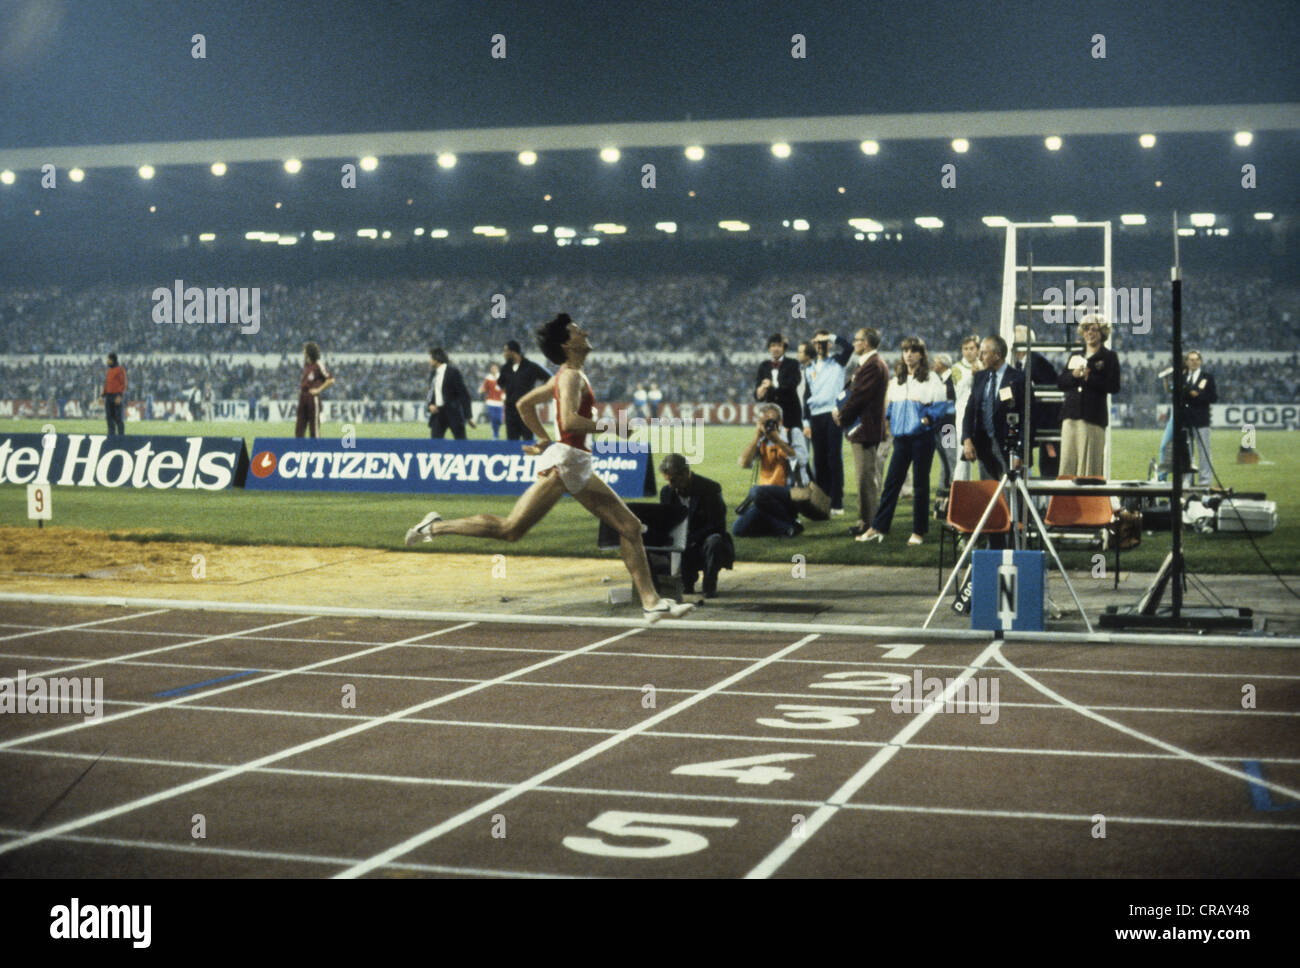 Seb Coe breaking the world record in the mile in 3:47.33 in the 1981 Golden Mile, Brussels - Stock Image